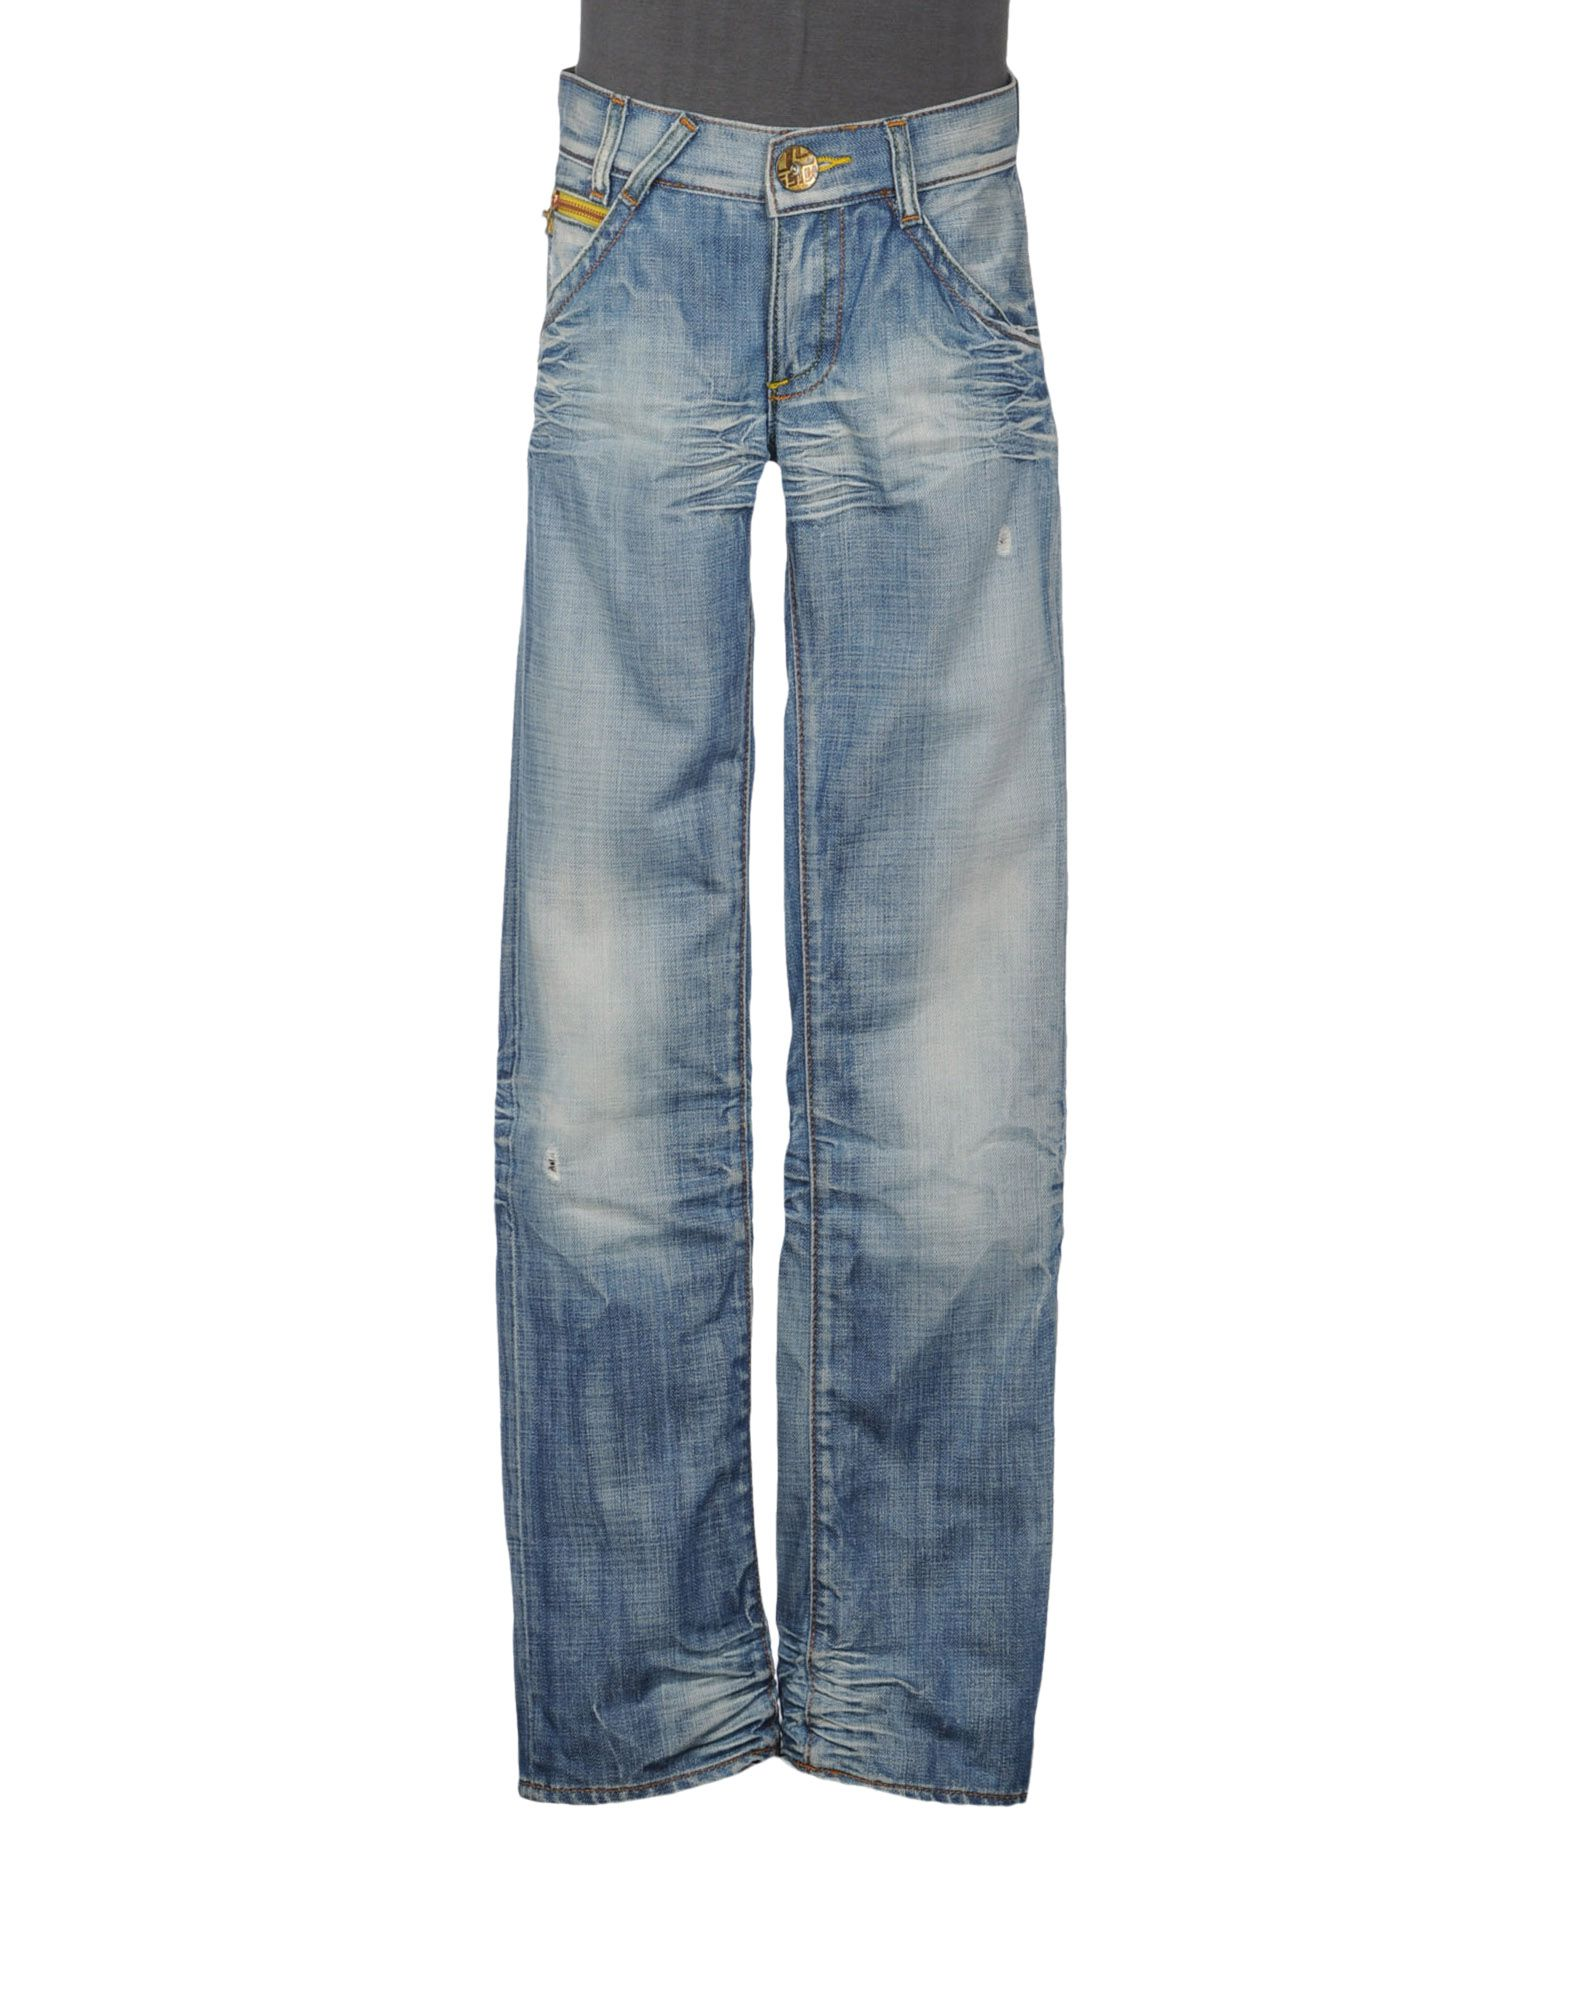 MISS SIXTY Jeans - Item 42184613